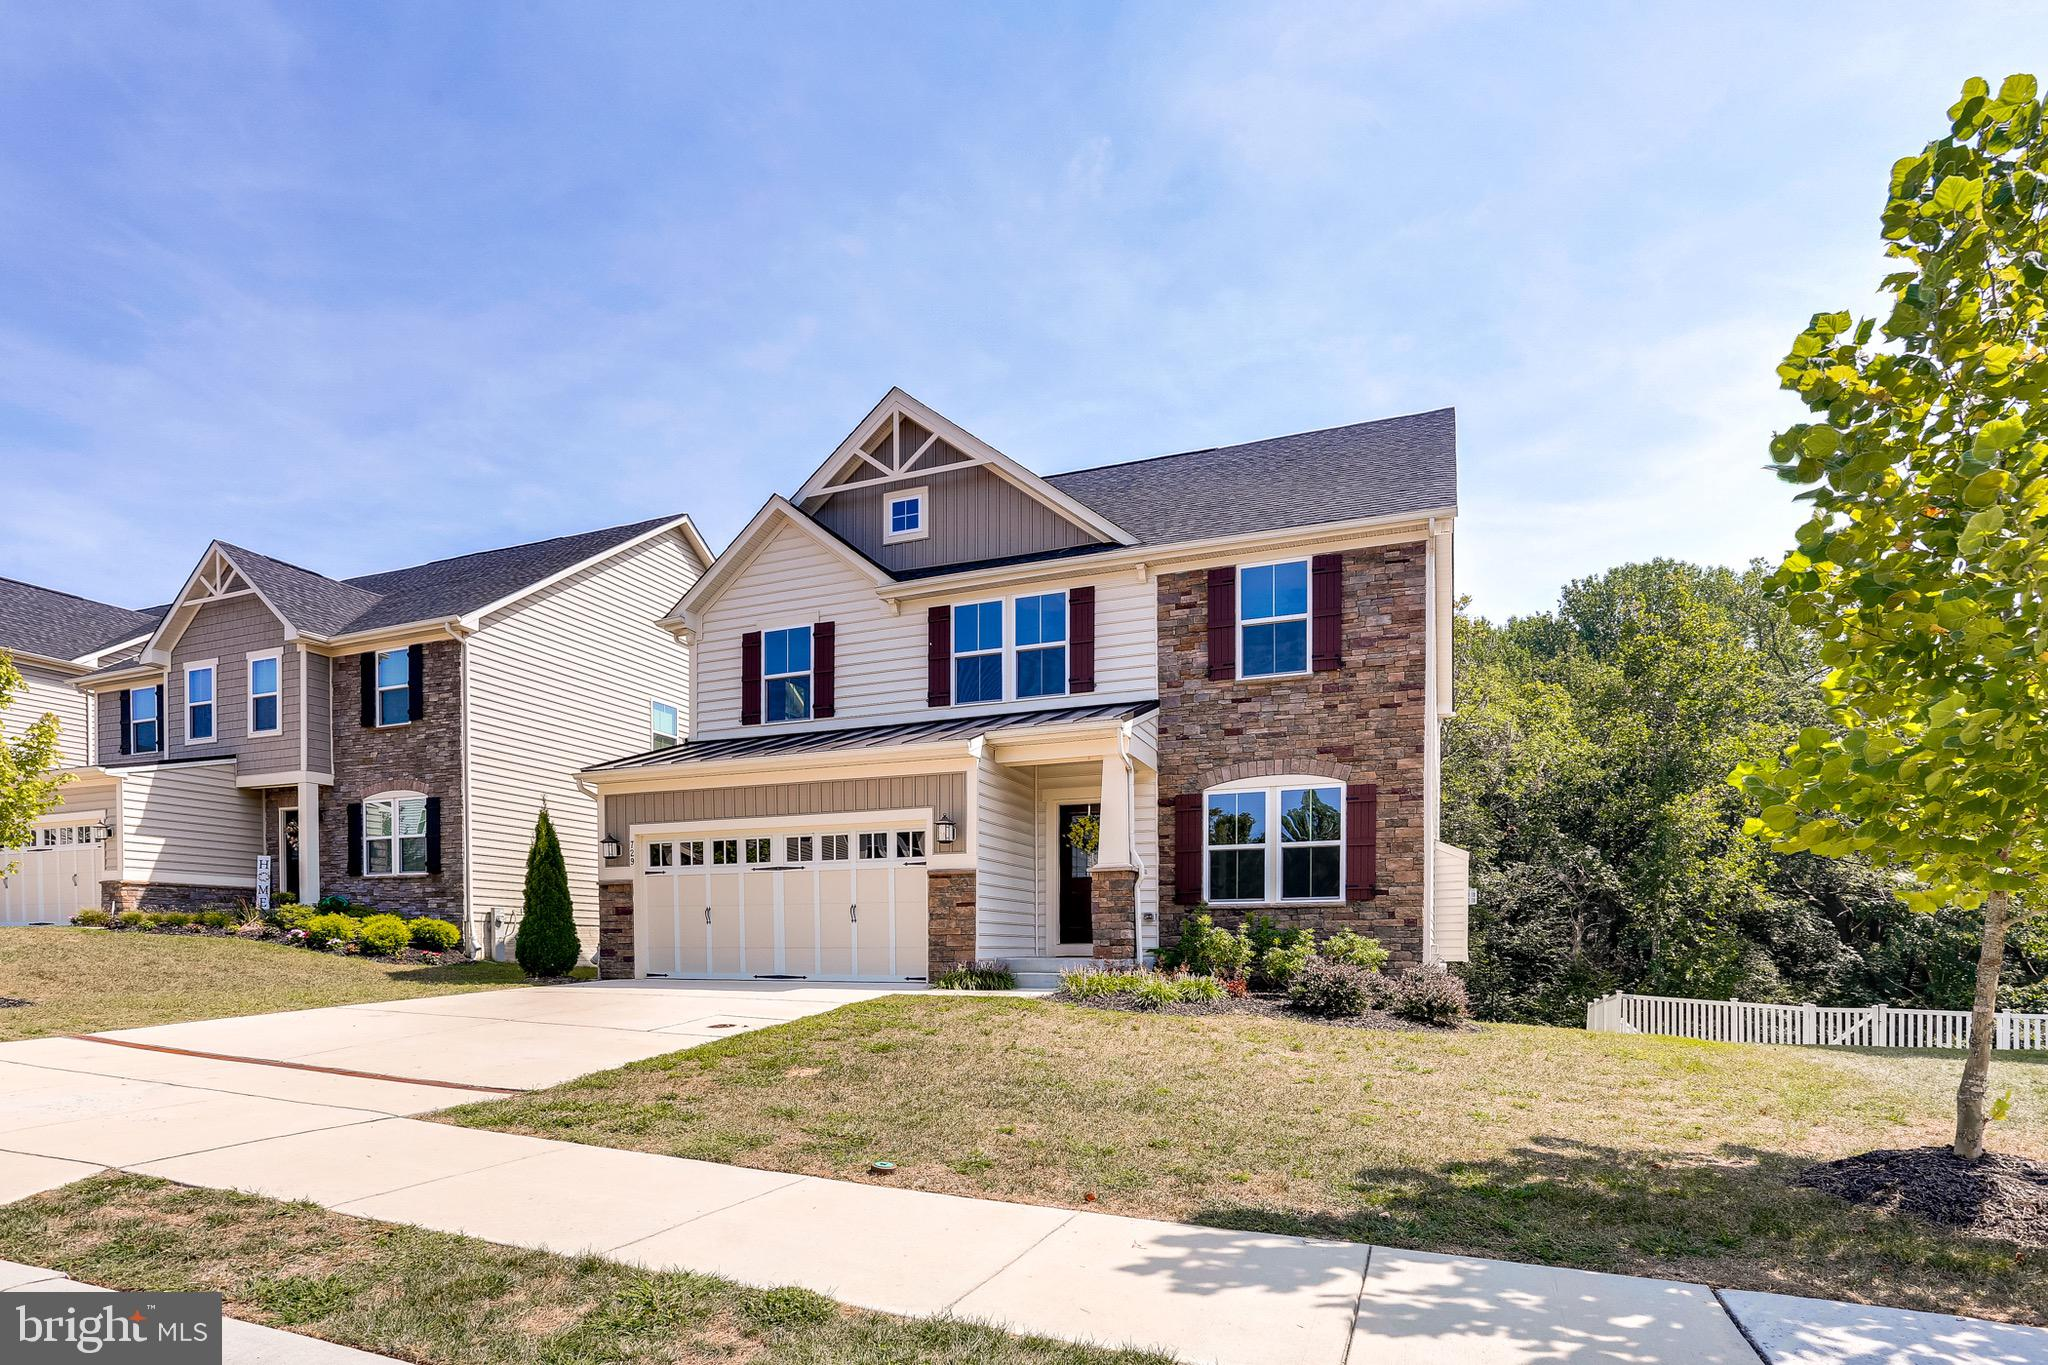 729 SHADY CREEK COURT, BEL AIR, MD 21014